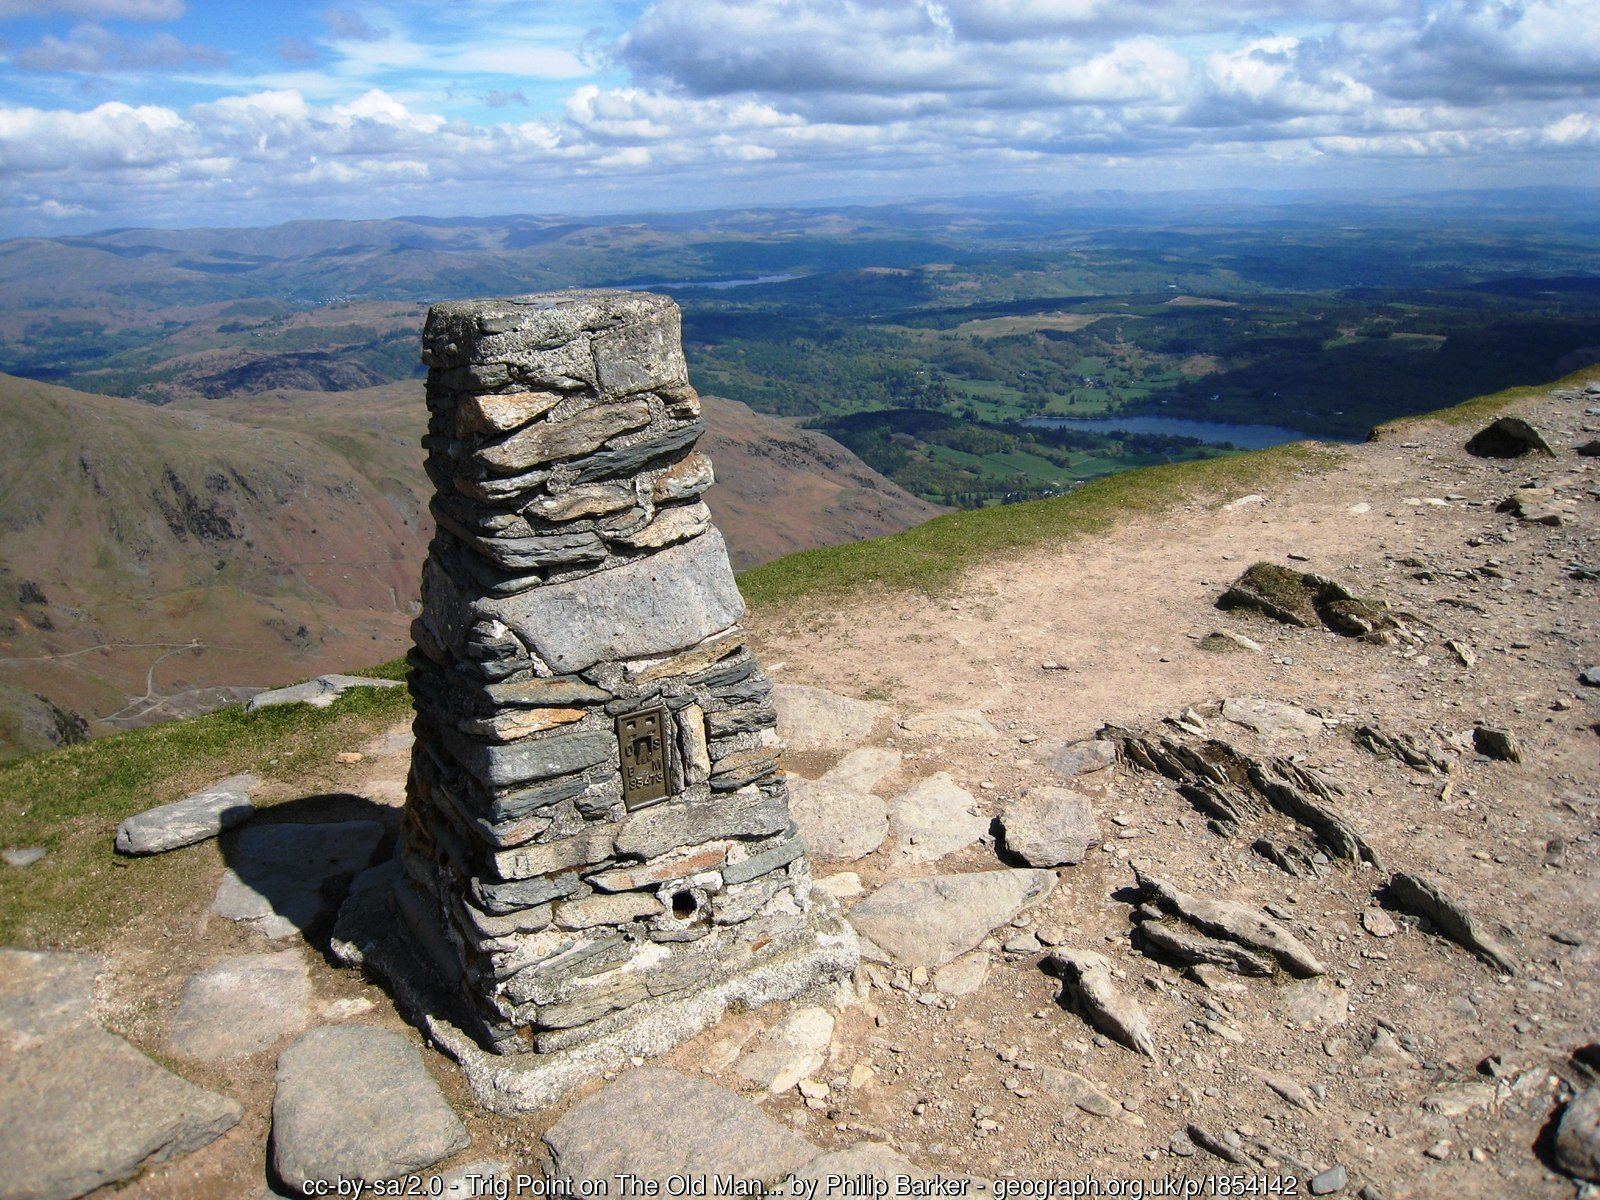 14 - Old Man of Coniston - 13 -The Highest Mountains In England - The Top 25